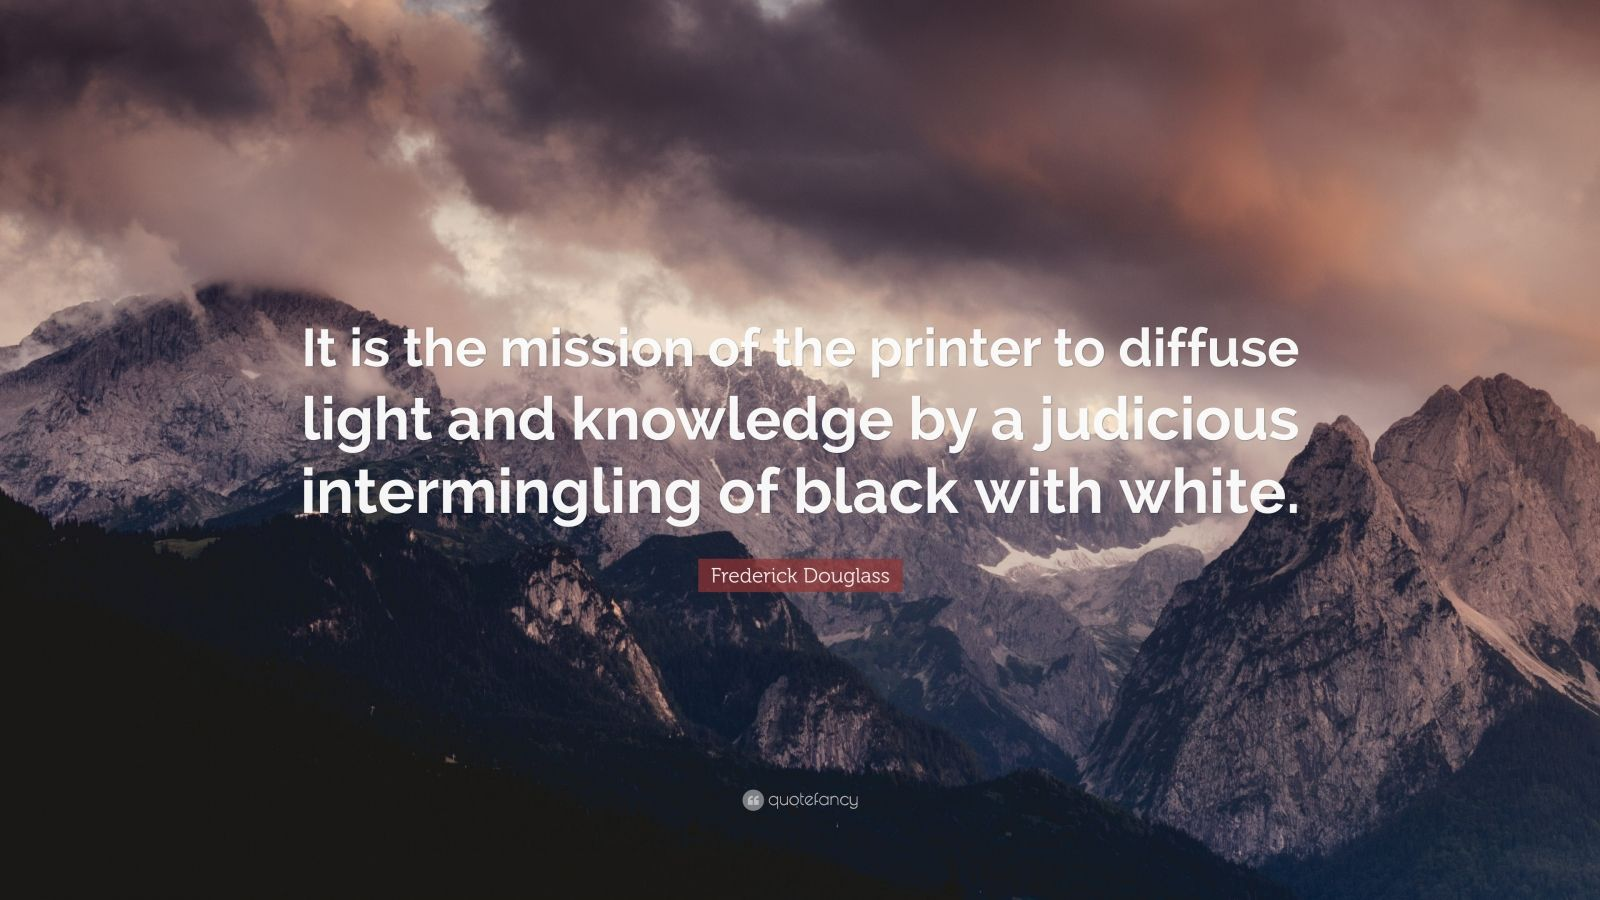 """Frederick Douglass Quote: """"It is the mission of the printer to diffuse light and knowledge by a judicious intermingling of black with white."""""""